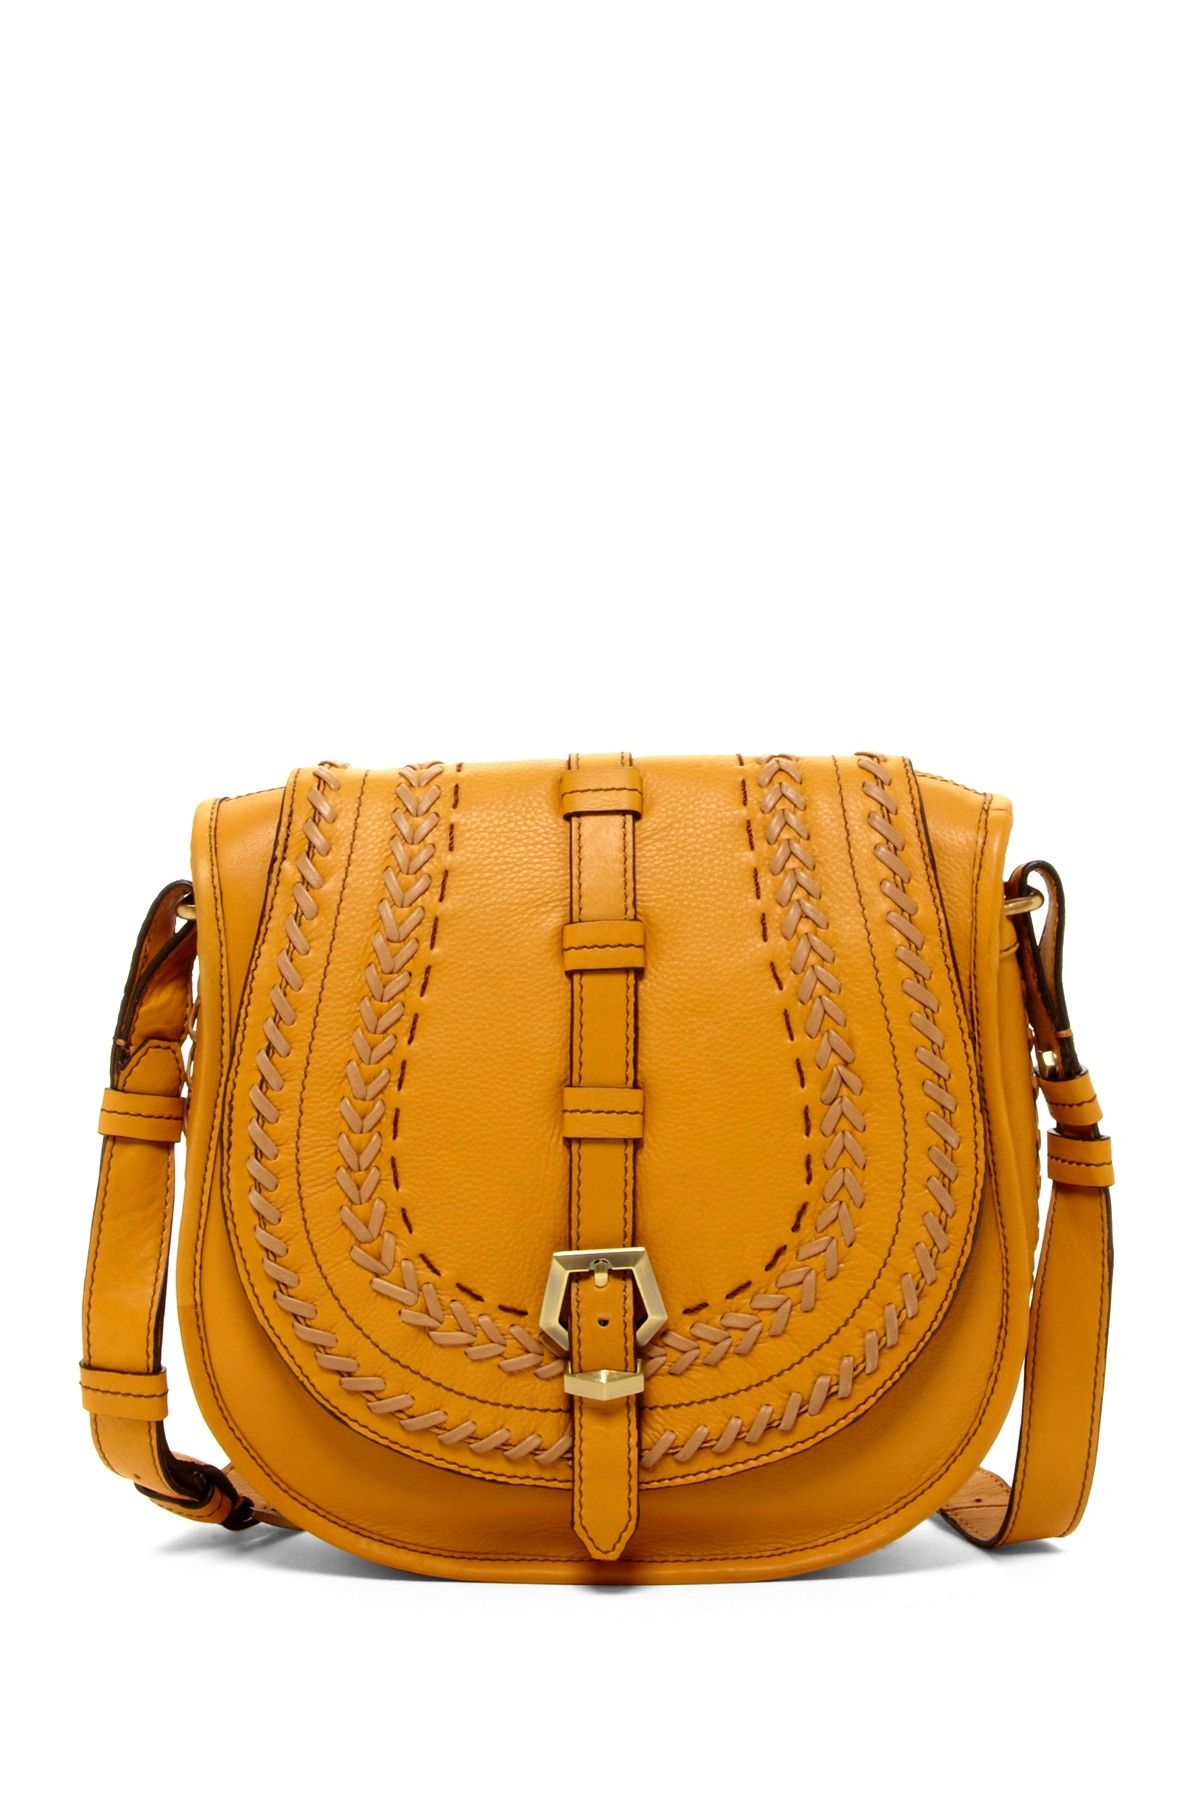 97bfd8a3c Mustard Saddle Bag | Accessories | Fashion, Bags, Leather saddle bags